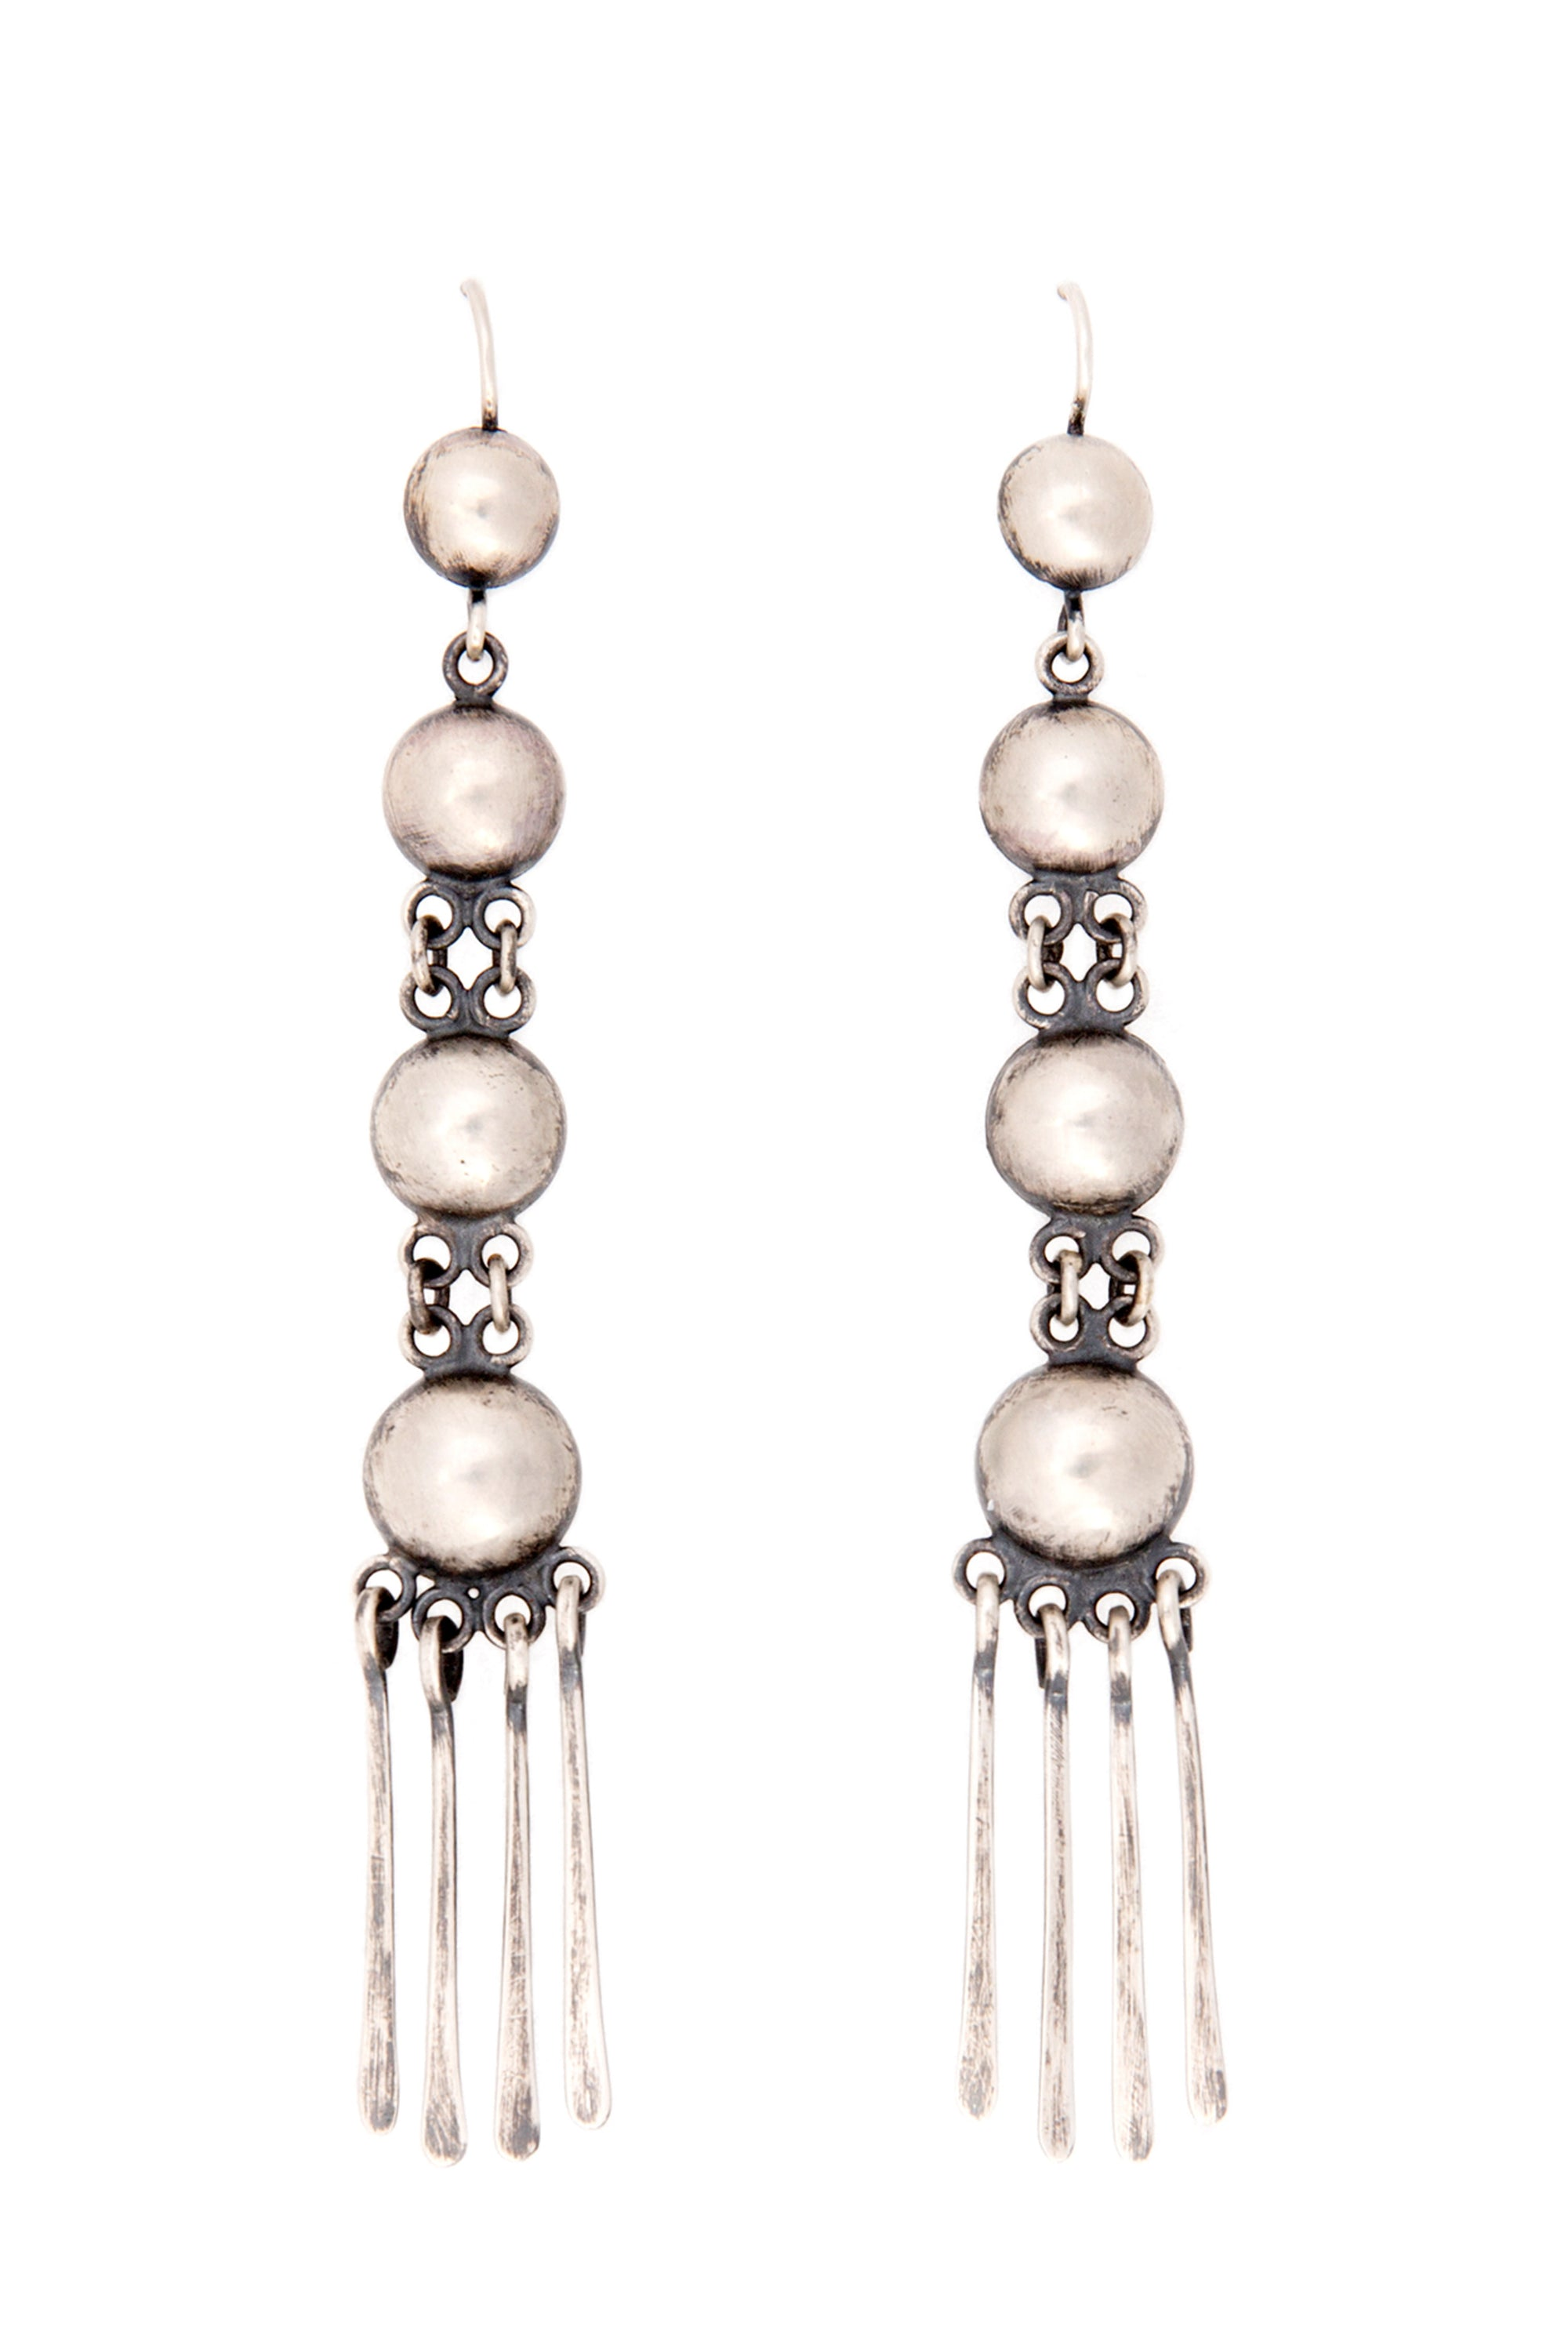 Earrings, Concho, Sterling Silver, Rain Dance, 193